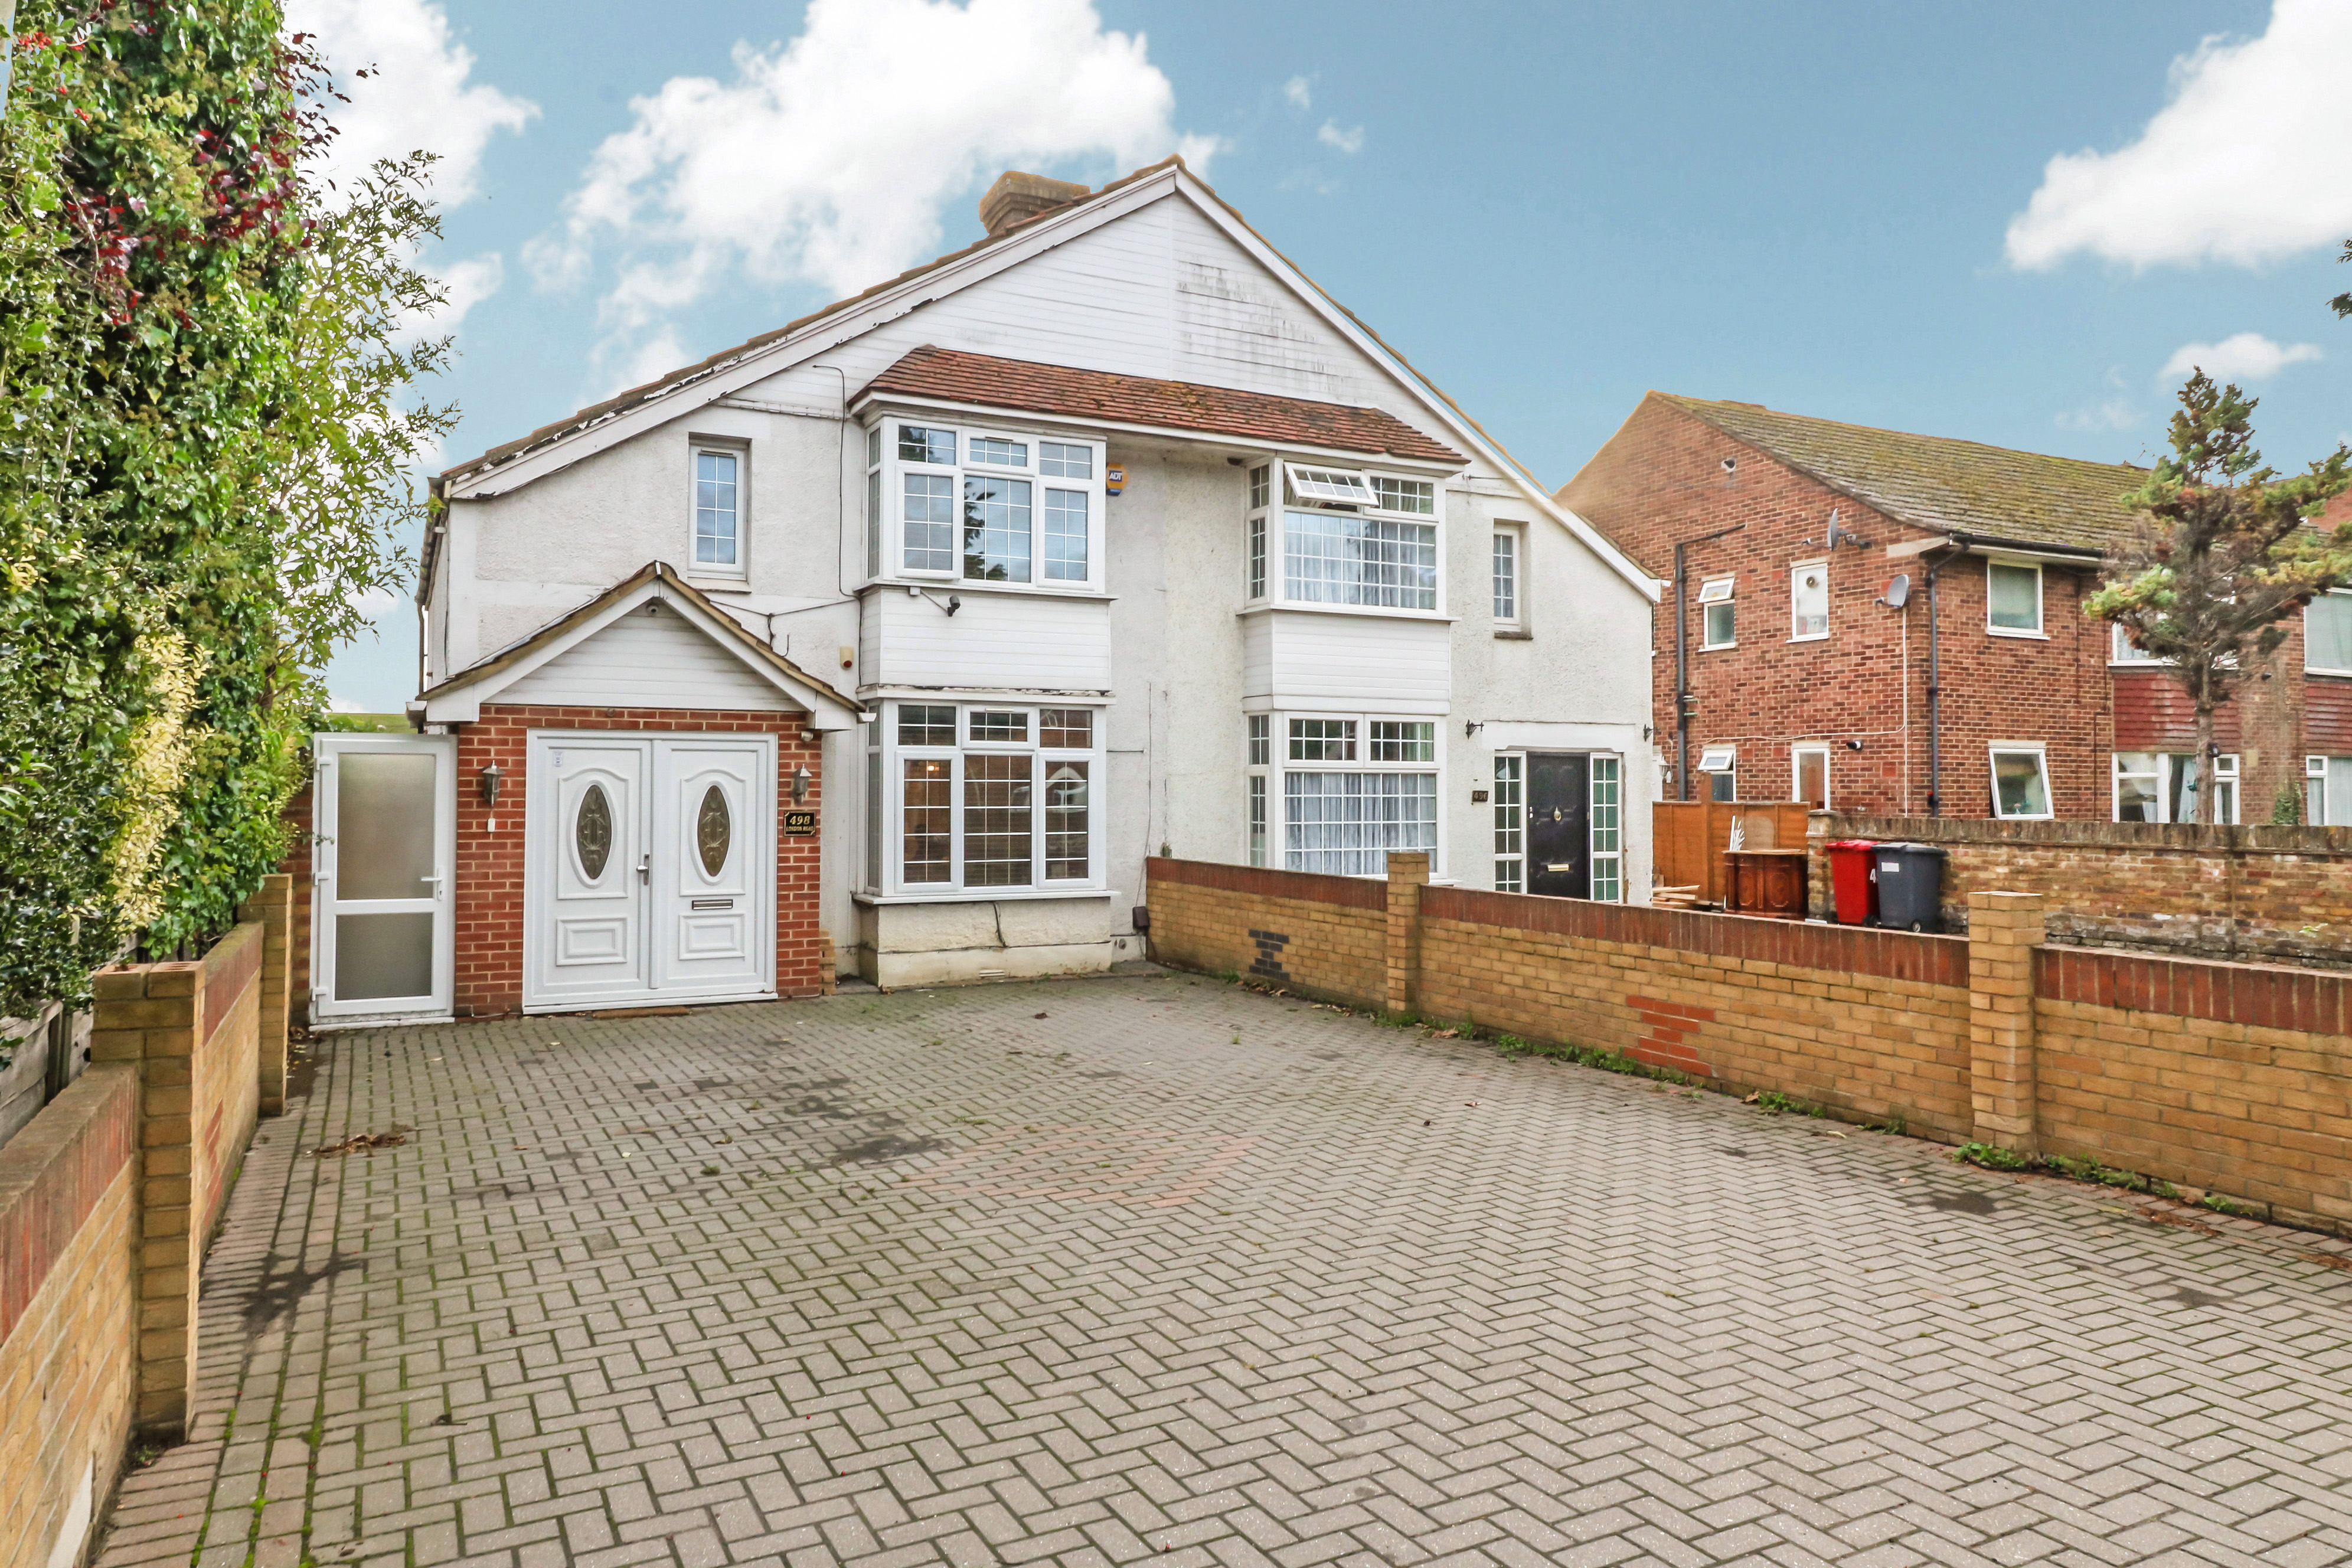 4 Bedroom House For Sale In Slough